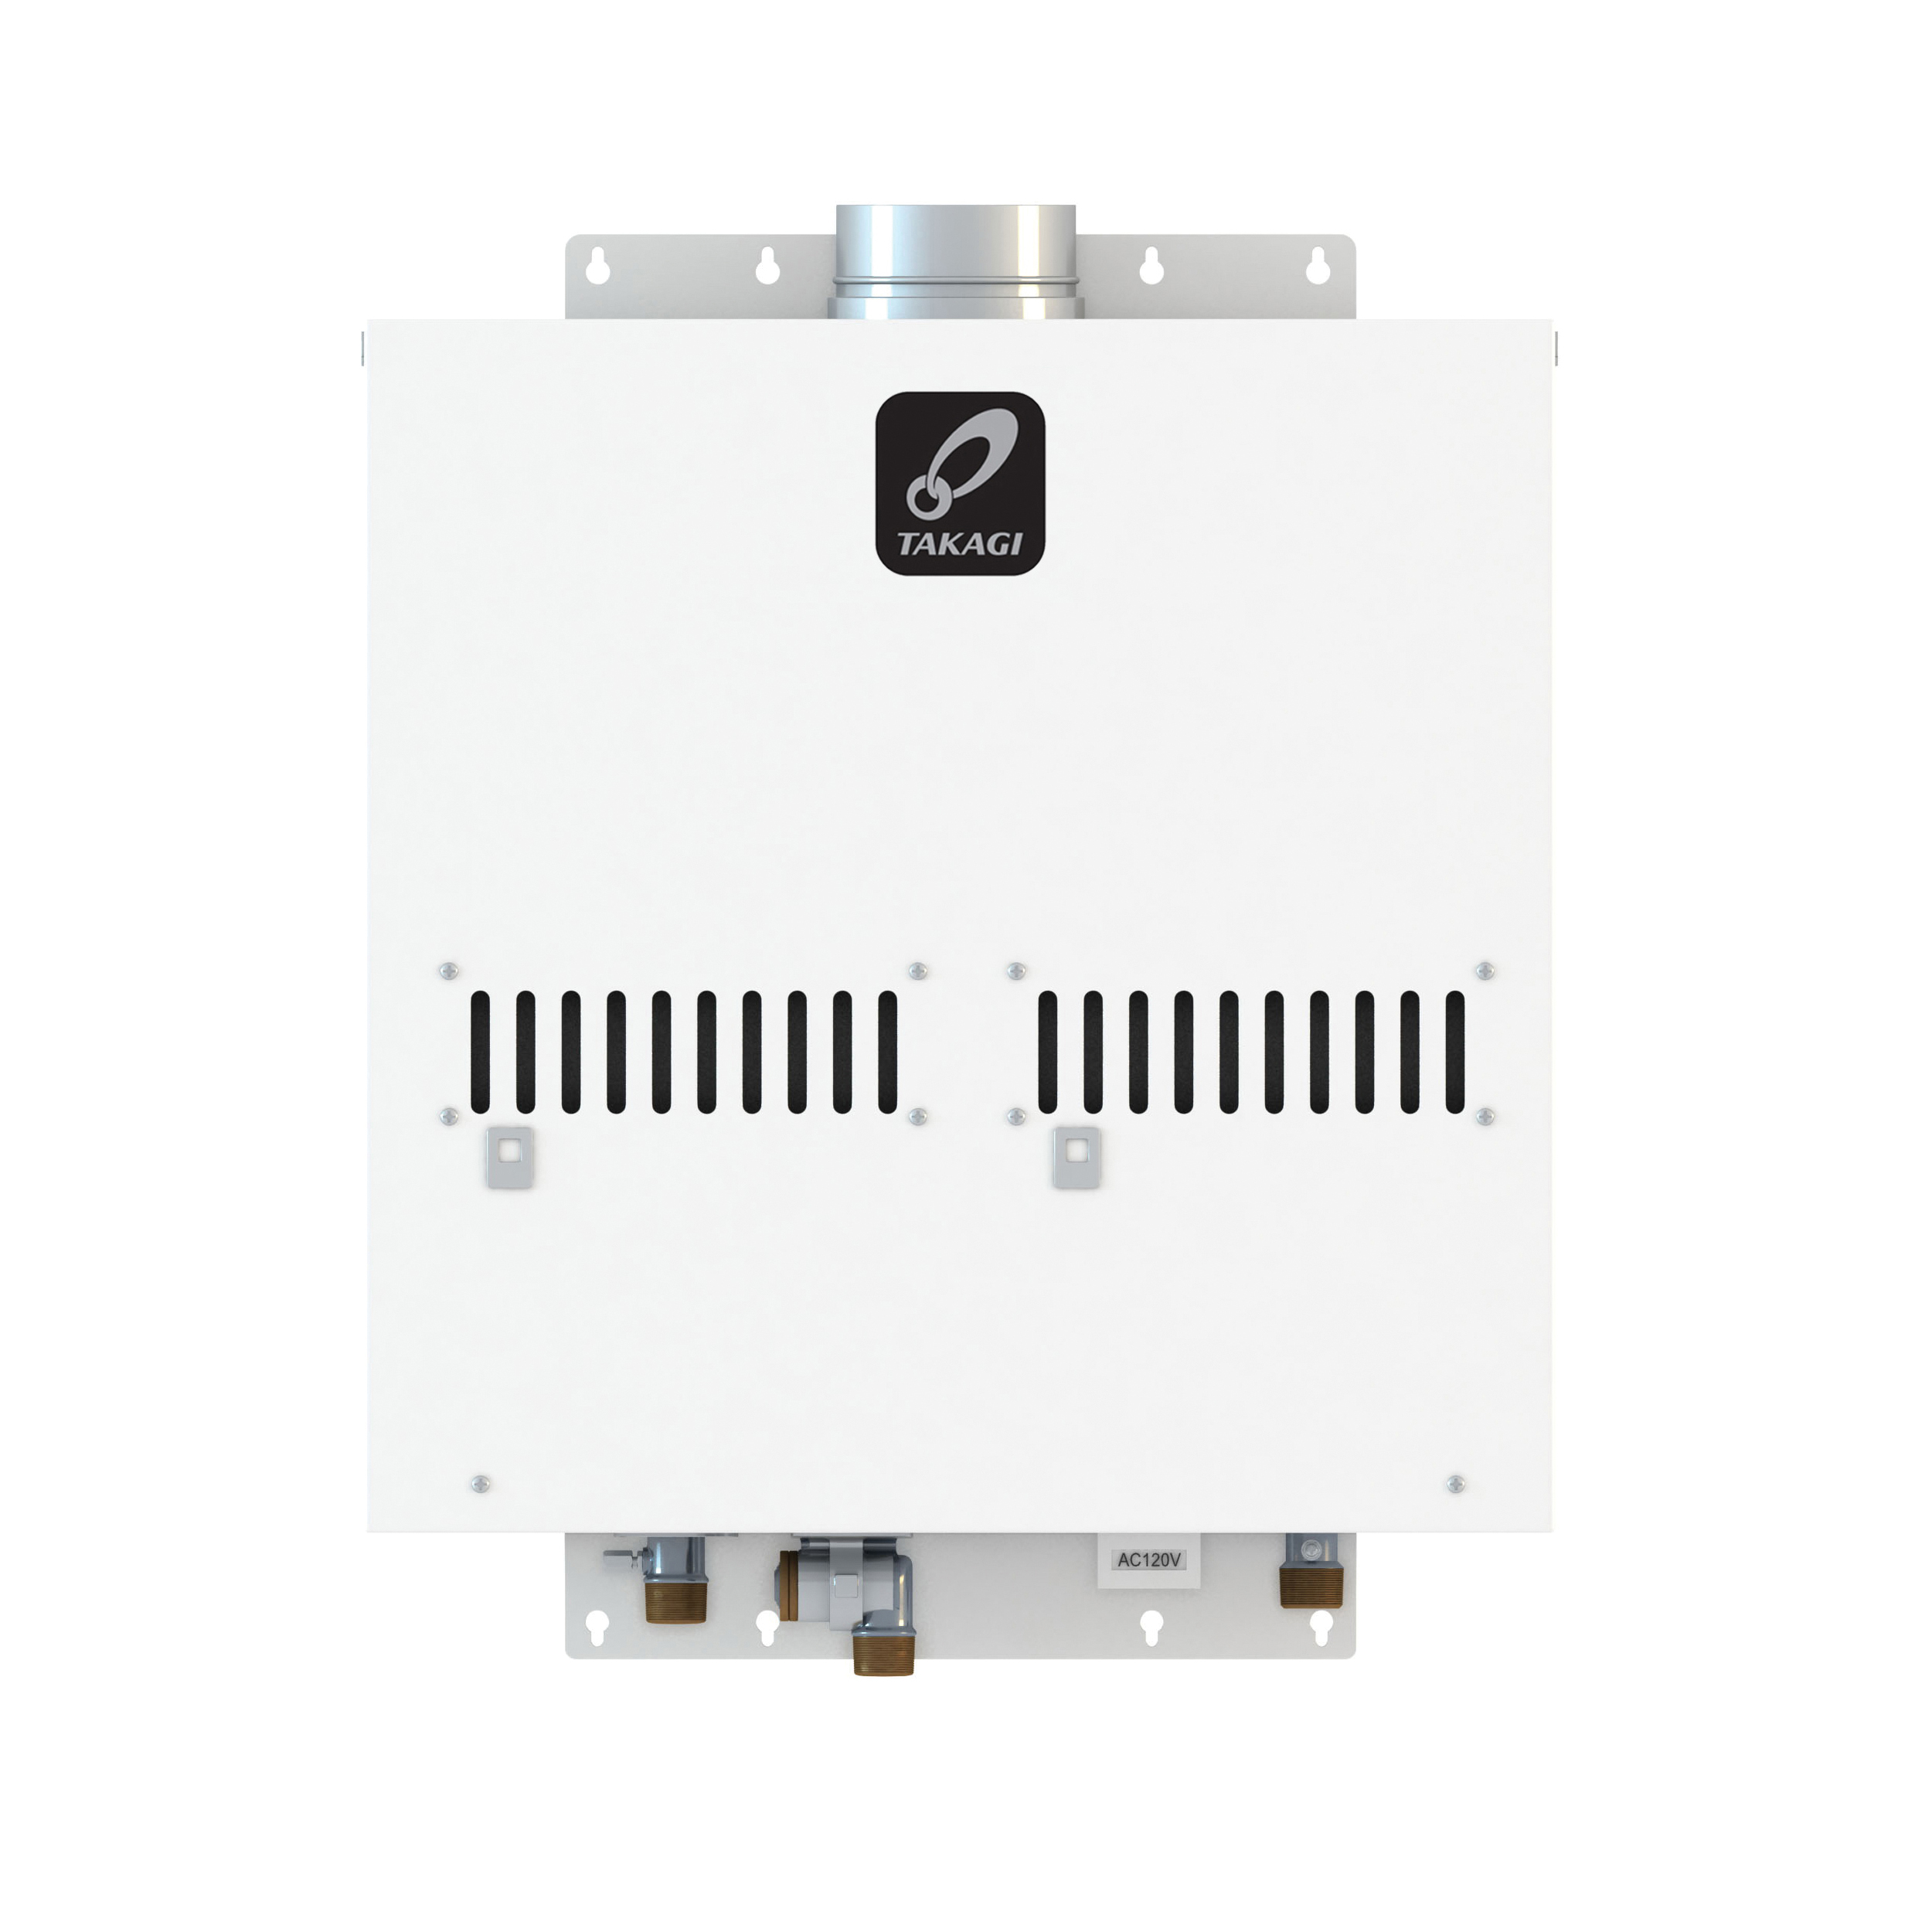 Takagi T-M50 Indoor/Outdoor Non-Condensing Tankless Water Heater, 380000 Btu/hr Heating, Natural Gas Fuel, Power Vent